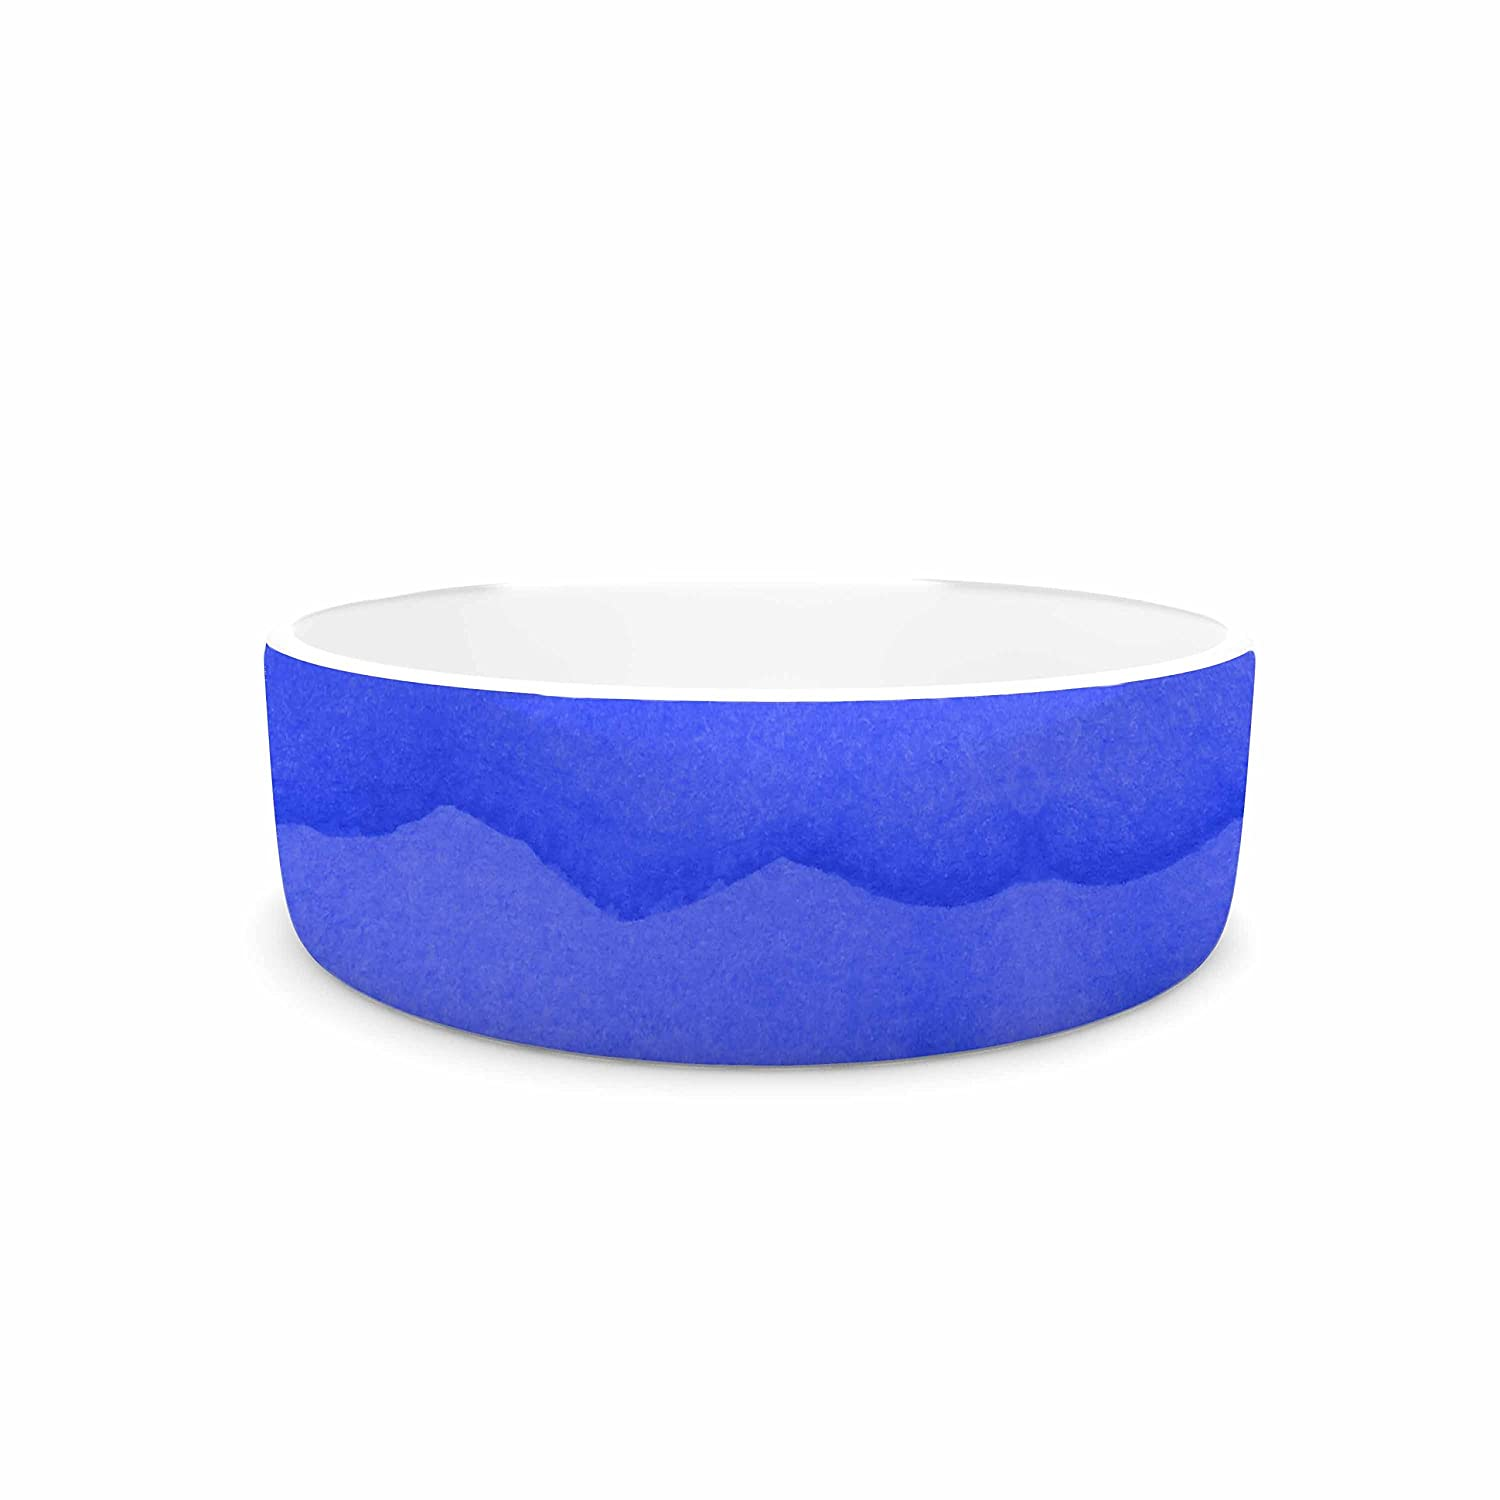 KESS InHouse KESS Original Ombre Berry  bluee Digital Pet Bowl, 7